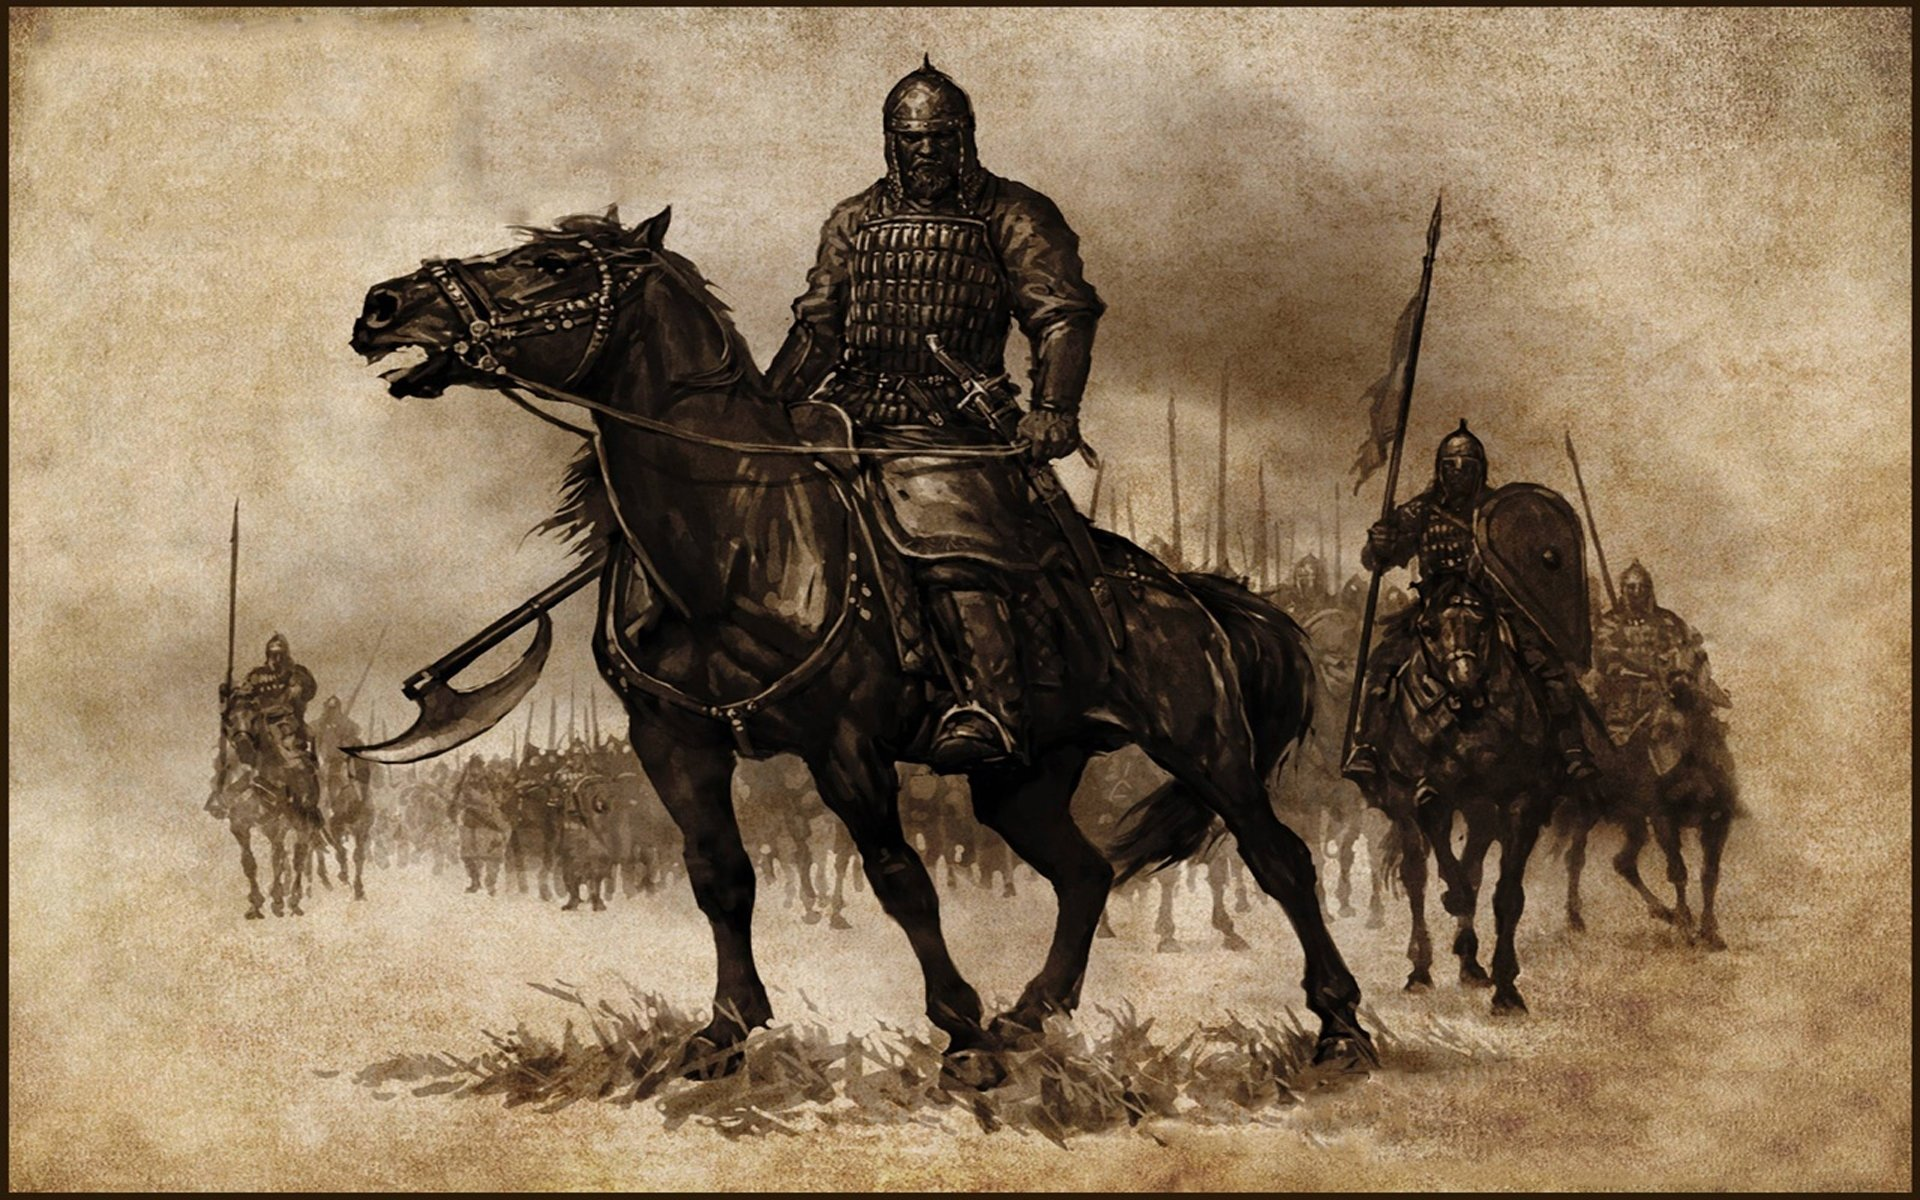 Mount Blade Warband Wallpapers Hd For Desktop Backgrounds